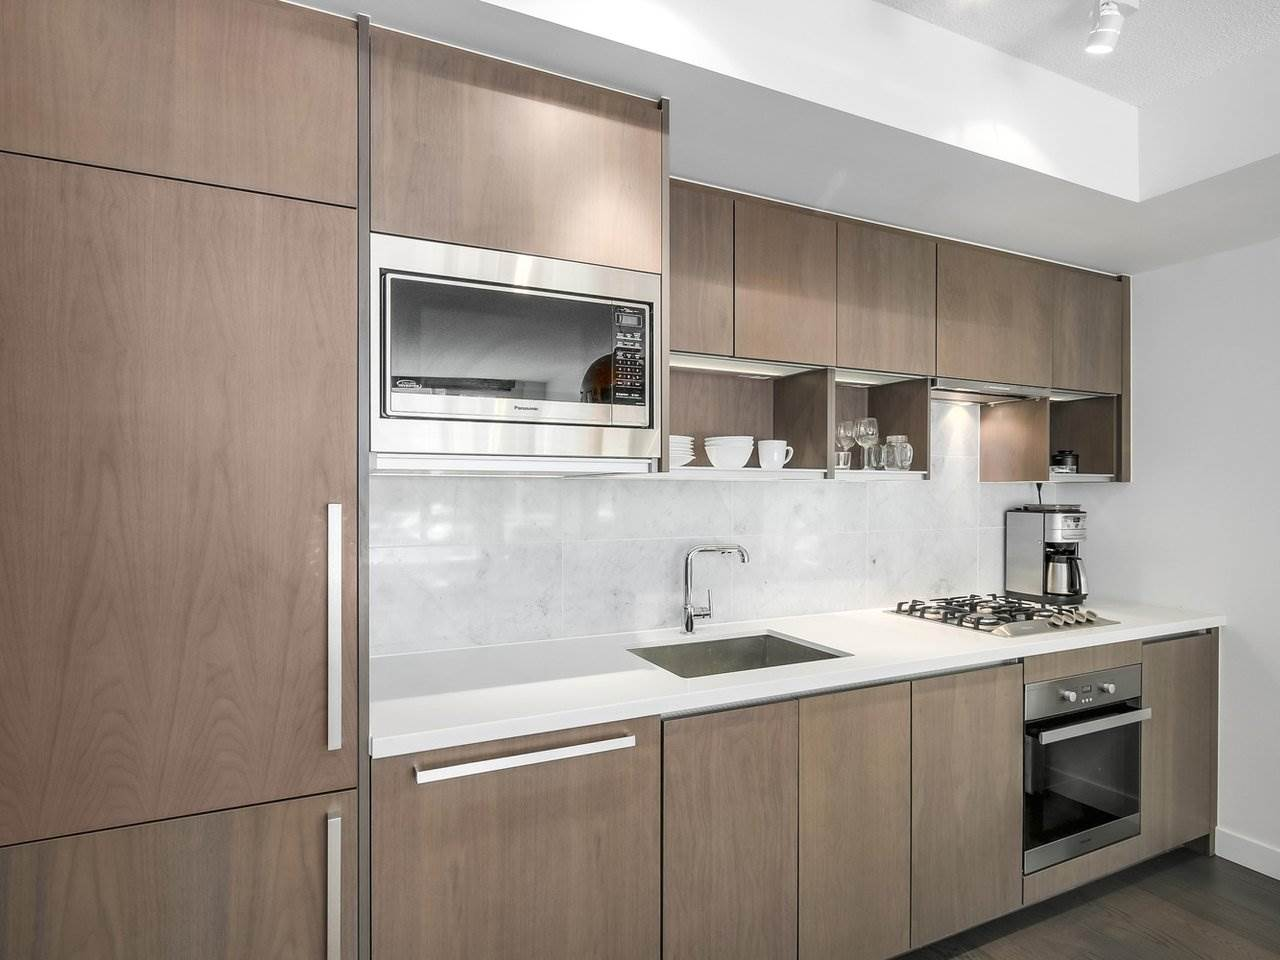 Condo Apartment at 303 68 SMITHE STREET, Unit 303, Vancouver West, British Columbia. Image 11